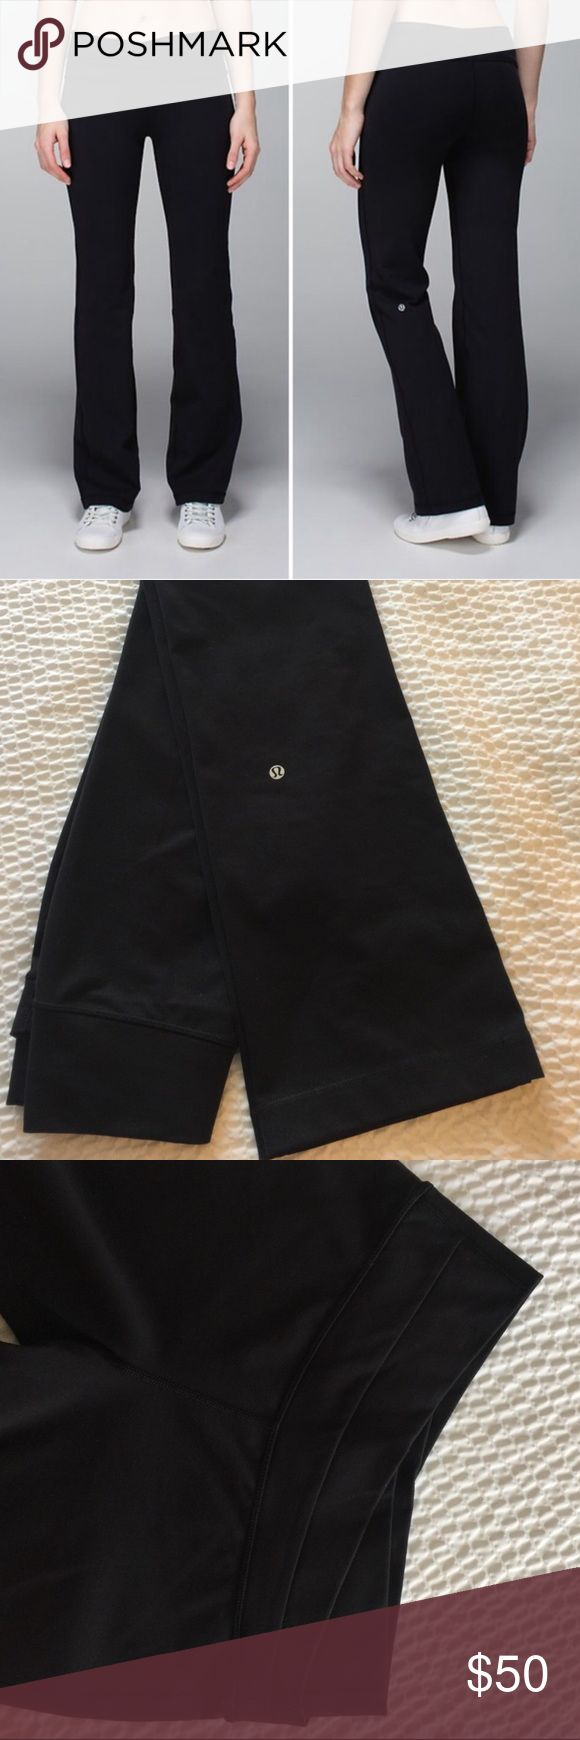 {LULULEMON} NWOT Astro Pants These are brand new with out tags, never worn. Astro waistband is flattering on all body types and very rare to find! ❤️ lululemon athletica Pants